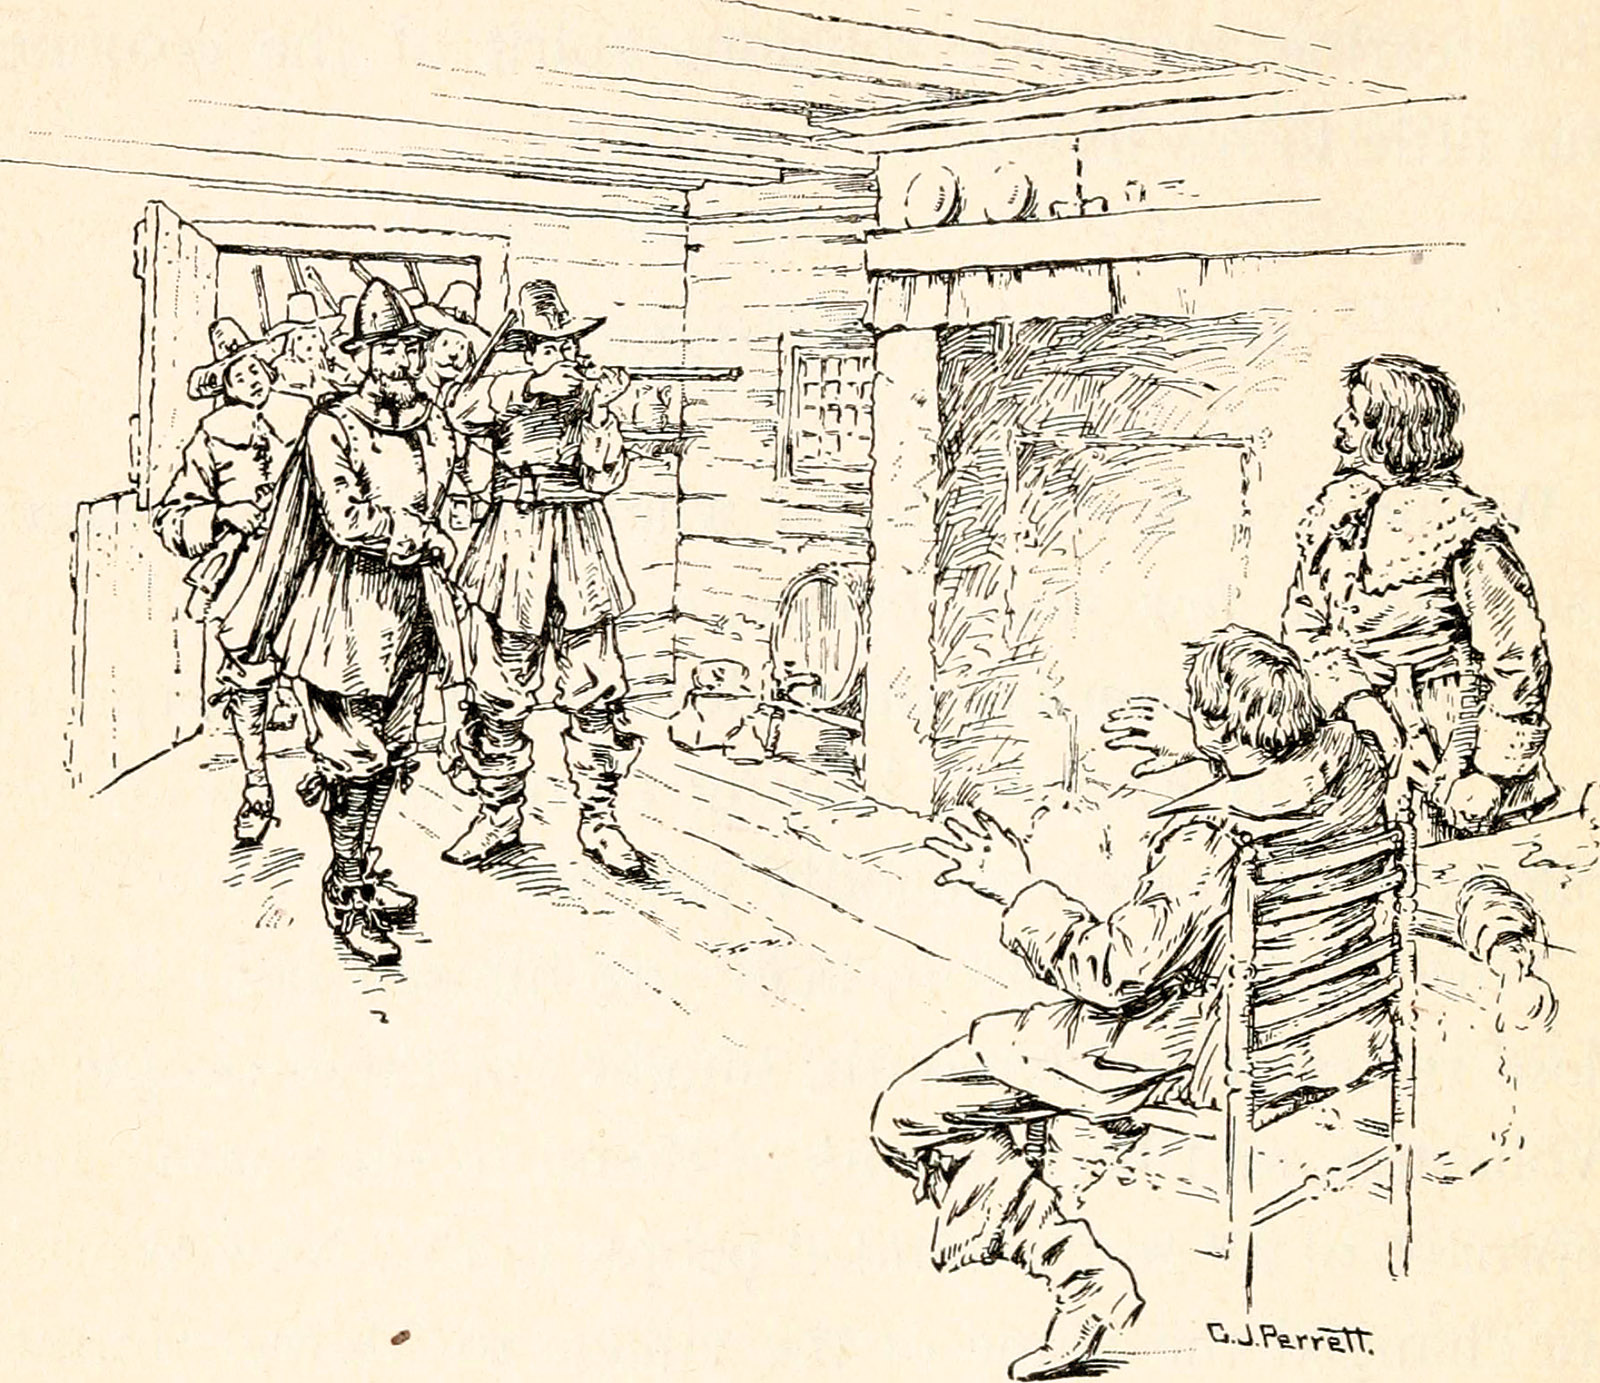 Drawing of Thomas Morton of Merrymount being arrested by Myles Standish of the Plymouth Colony, 1628